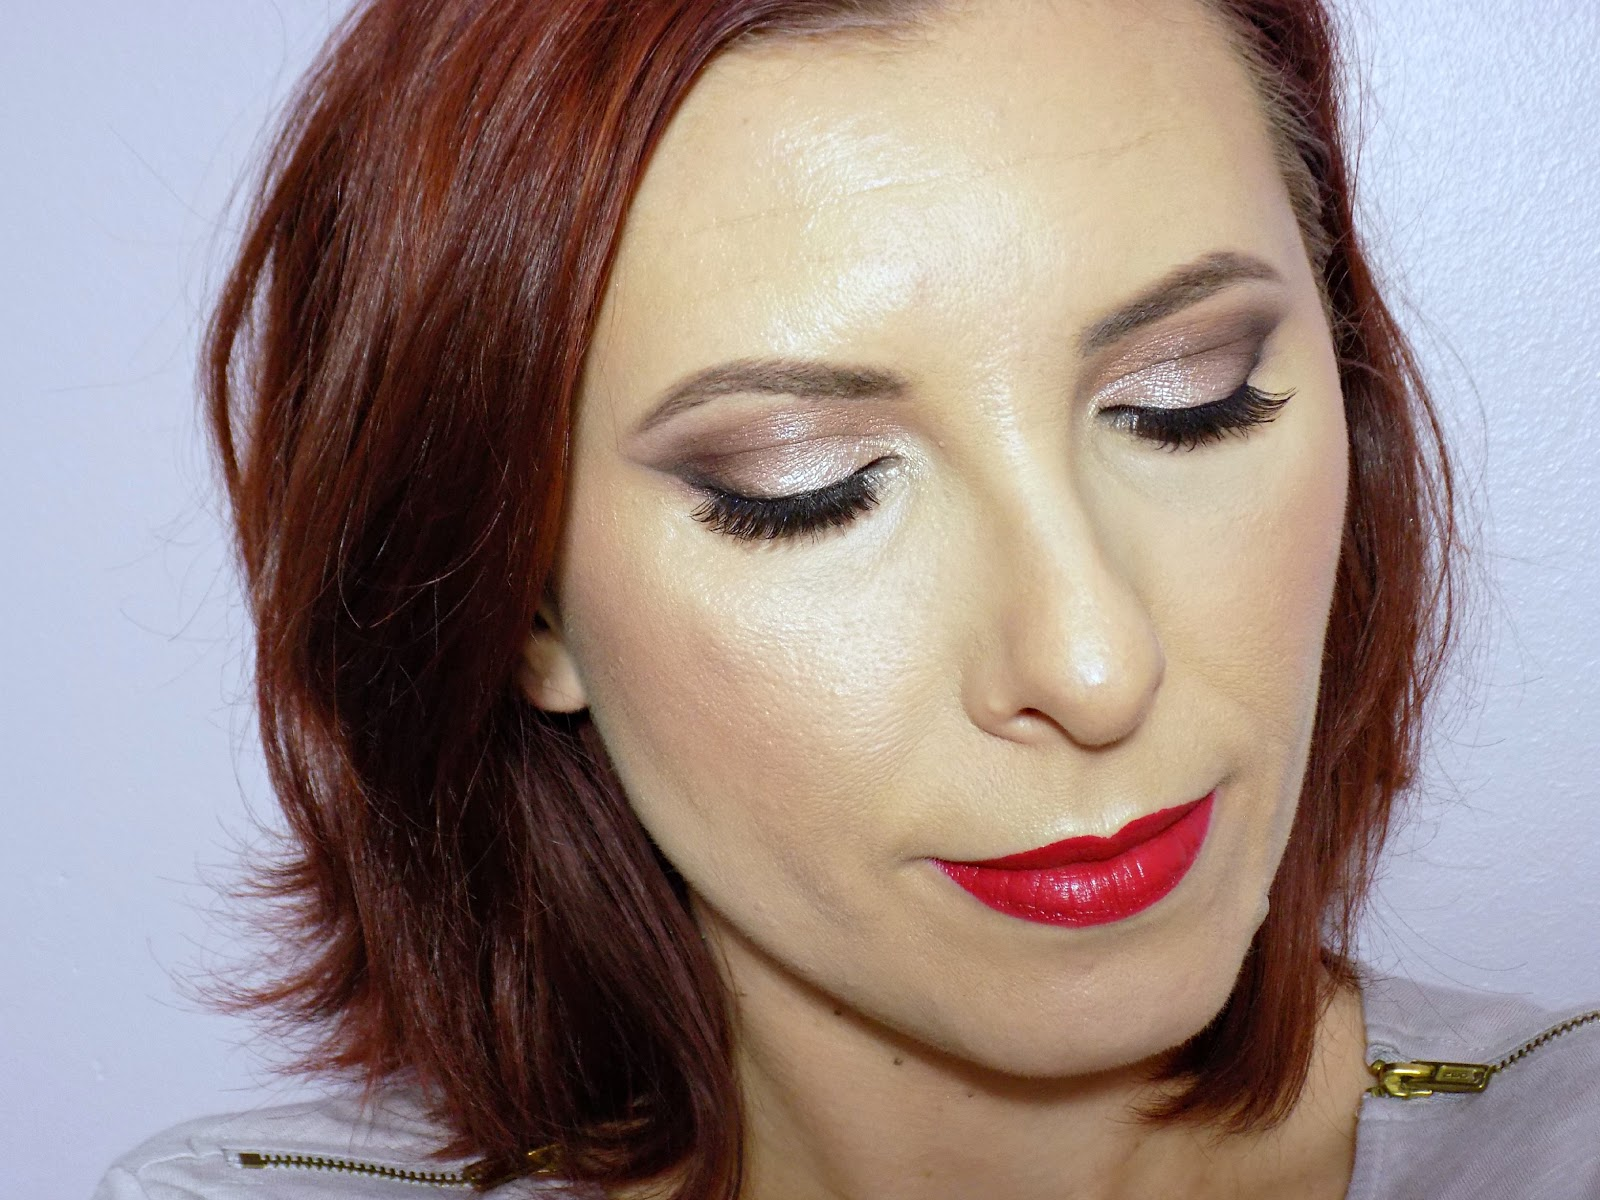 Christmas Day/party glam makeup look